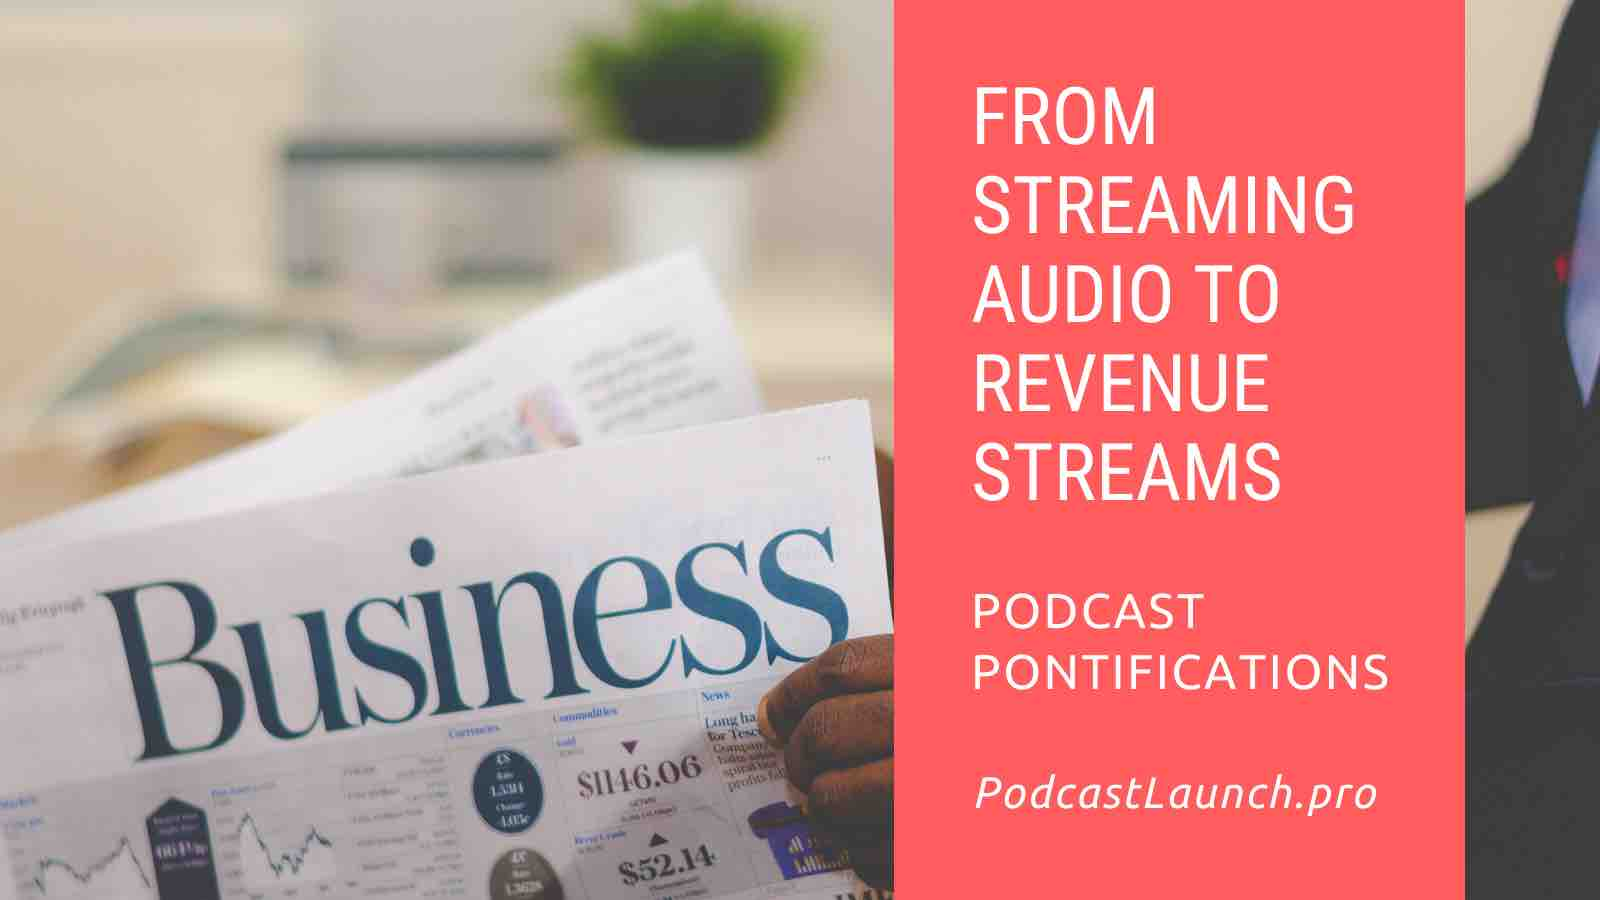 From Streaming Audio To Revenue Streams